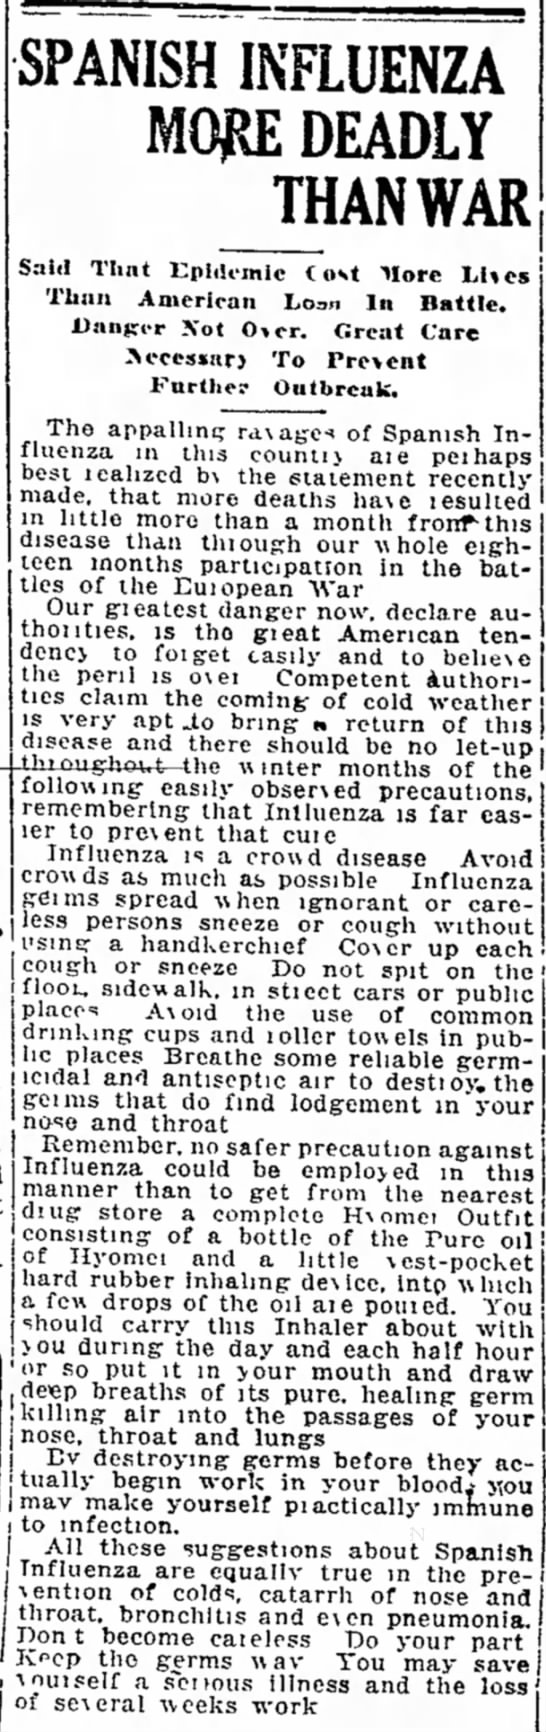 Spanish Influenza More Deadly Than War -